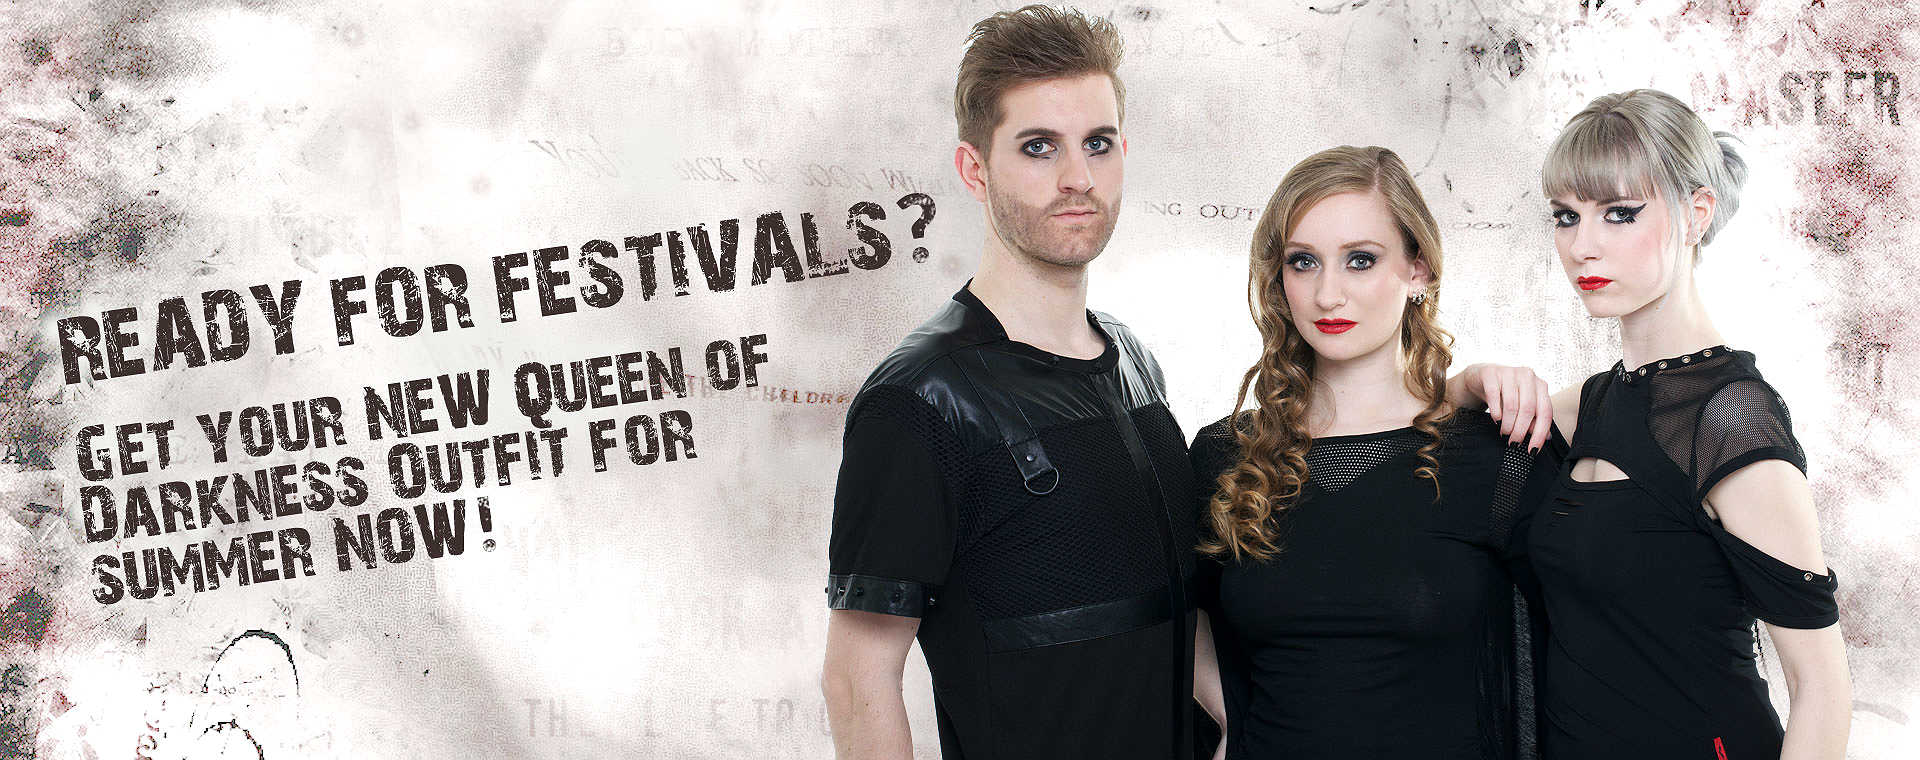 Elegante Gothic Festival Fashion - NOW in your Queen of Darkness Fashion Shop!